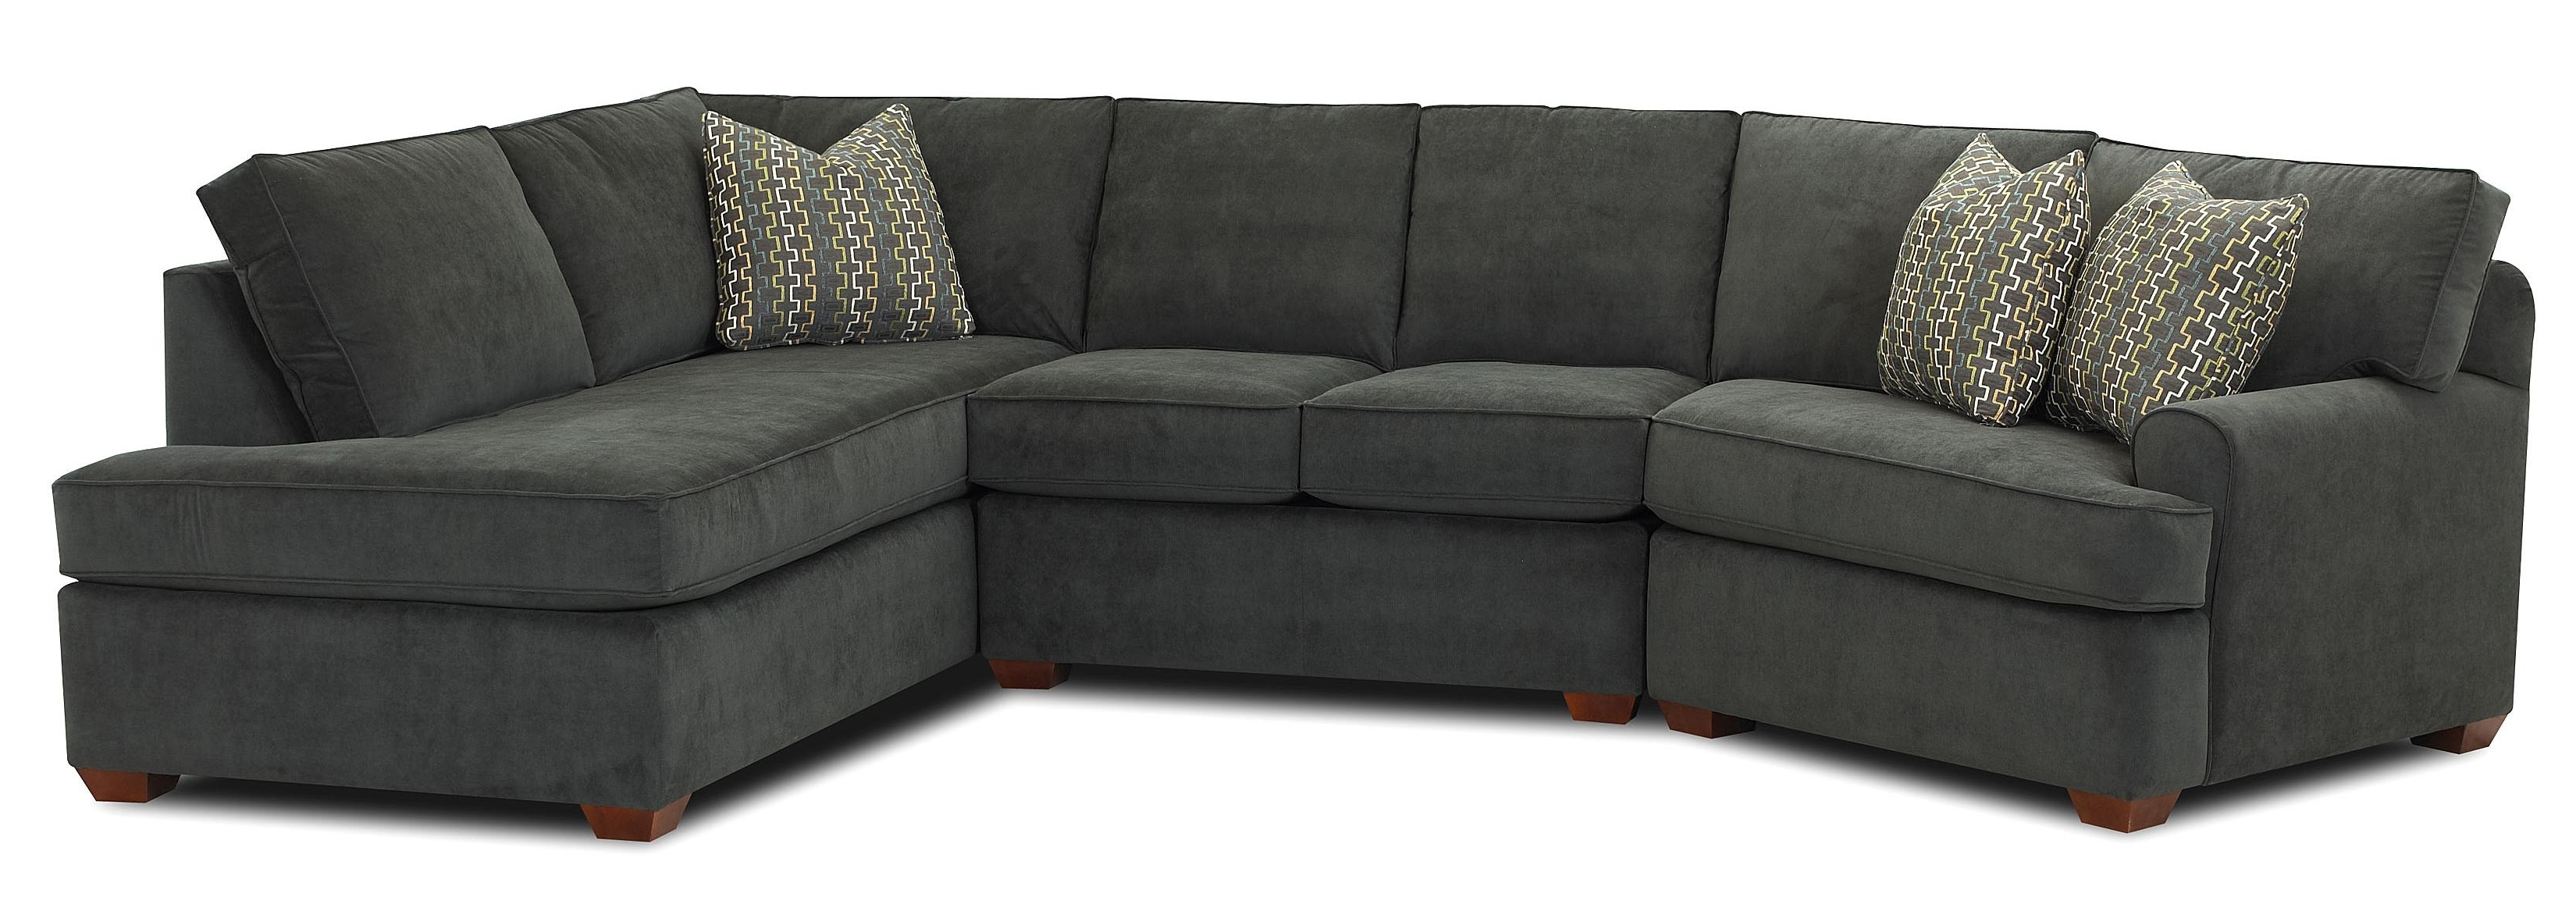 Wolf In Green Sectional Sofas With Chaise (View 20 of 20)